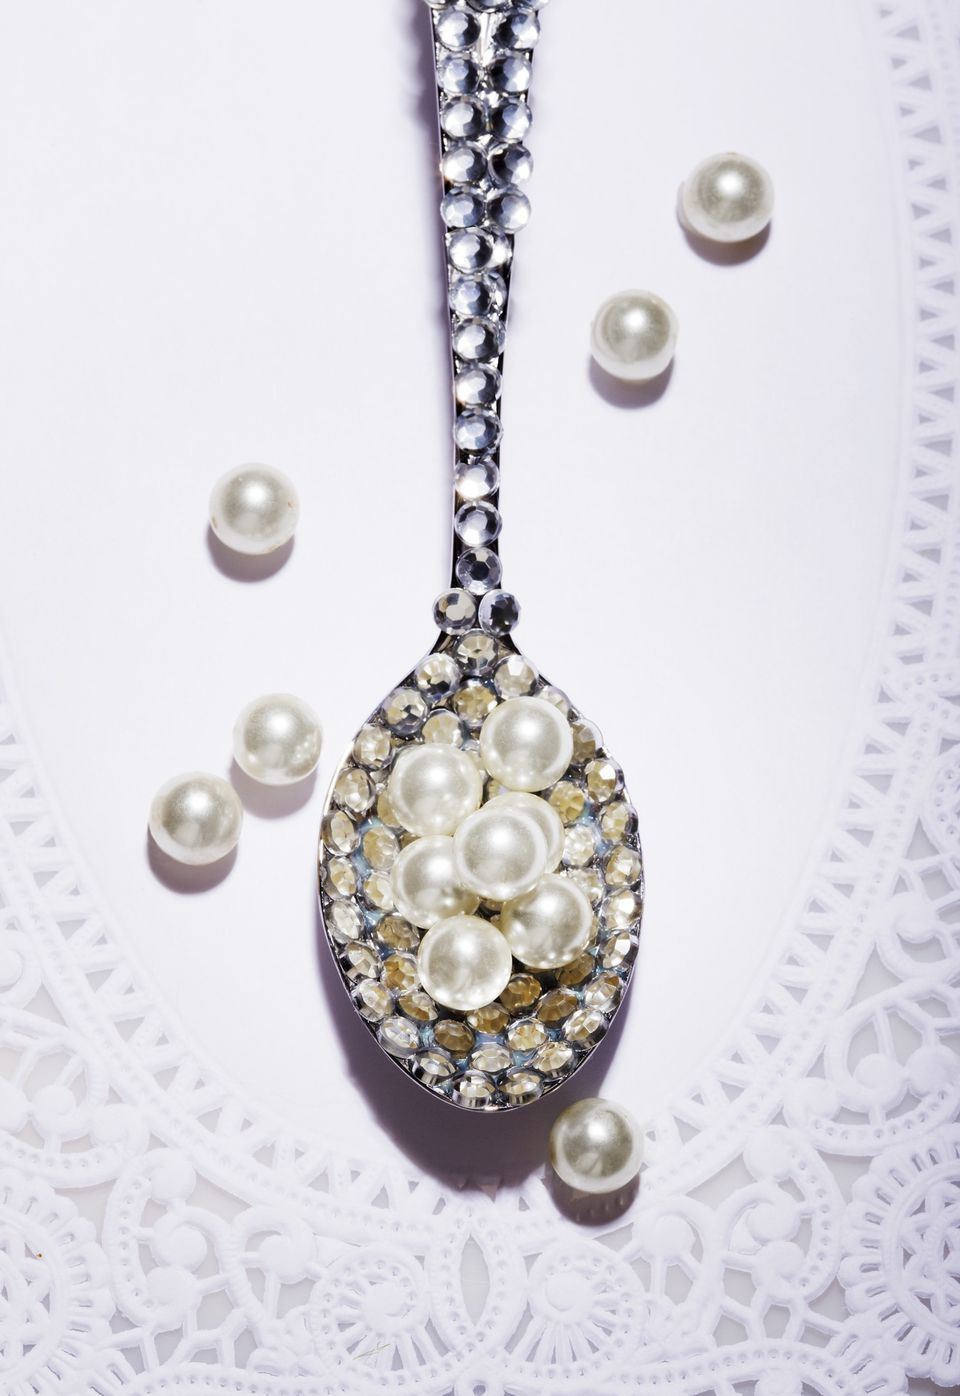 Do You Want to Be a Fine Jewelry Designer